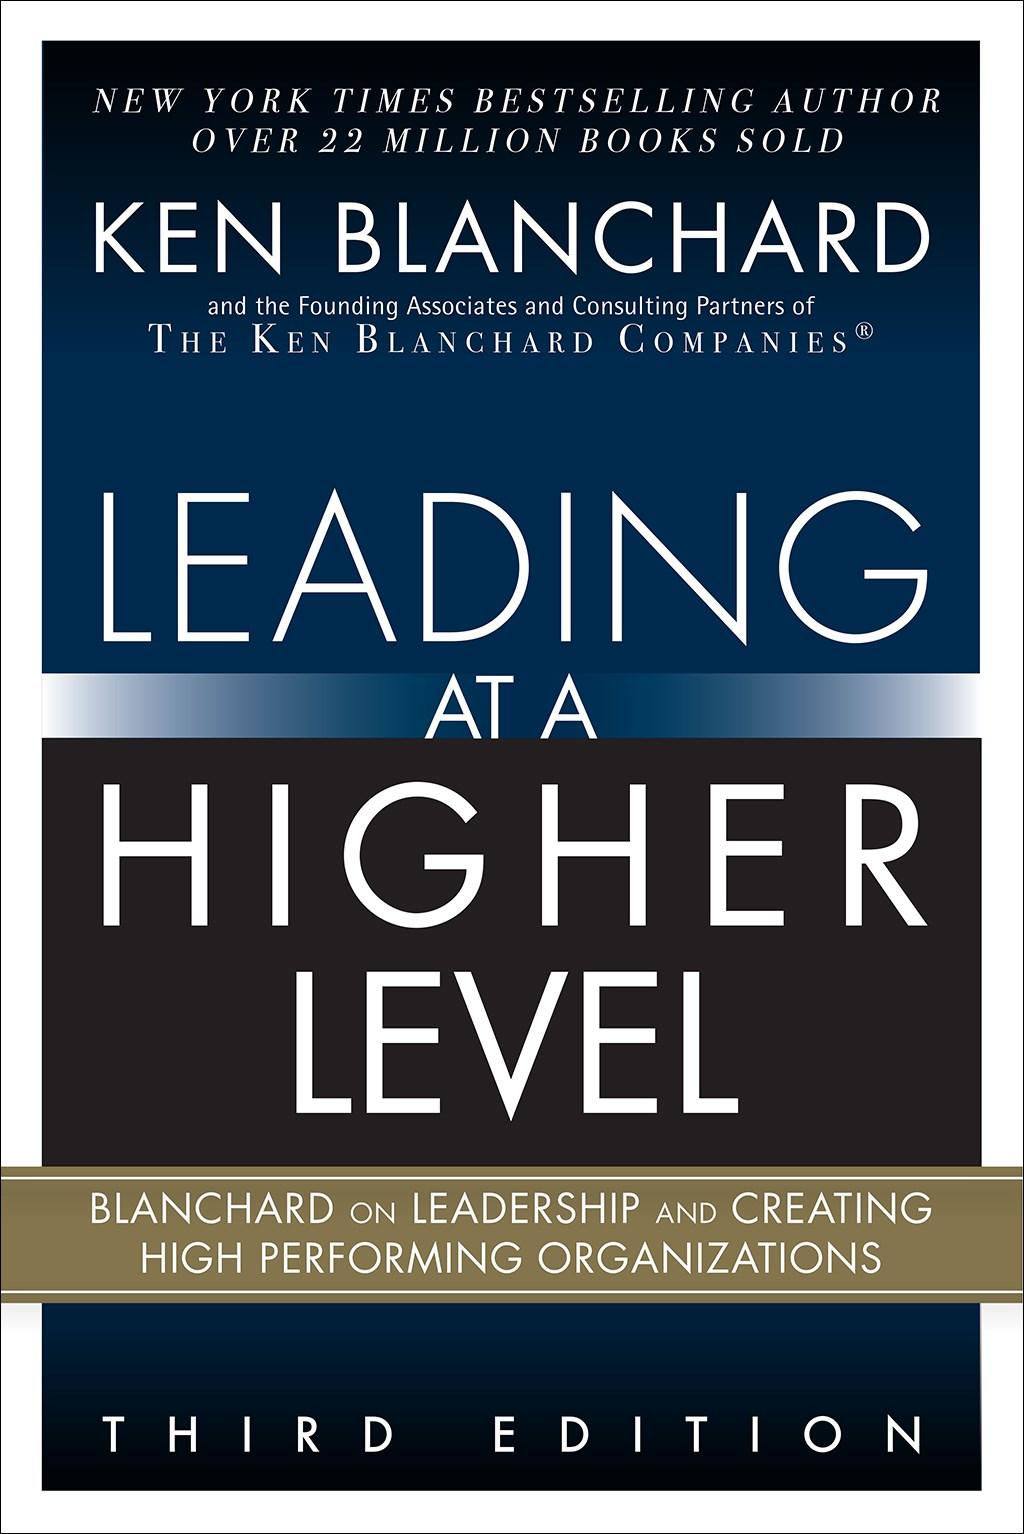 Is Your Organization High Performing?